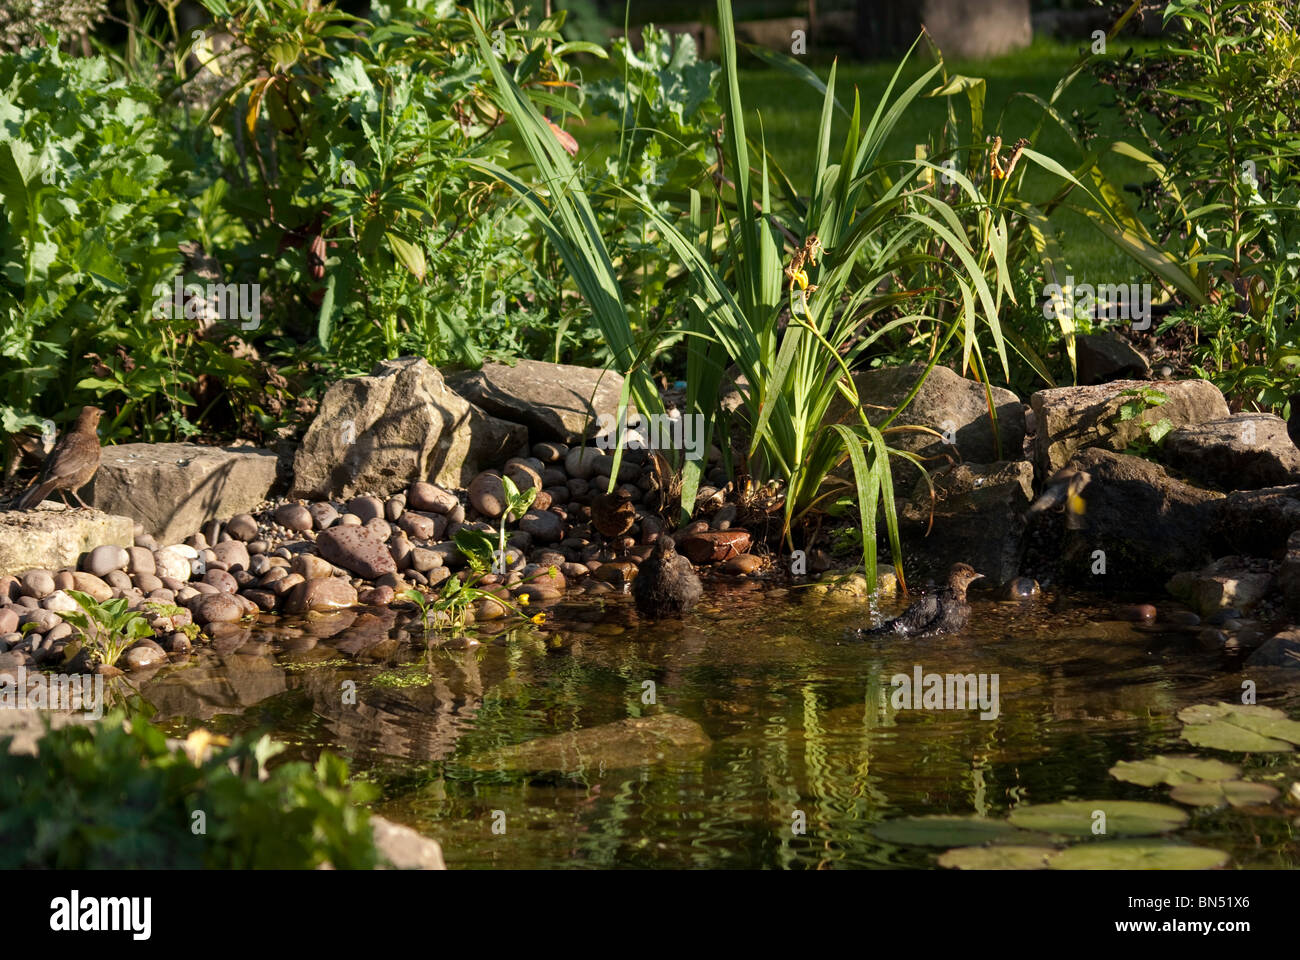 Birds bathing in the shallows of a small garden pond - Stock Image